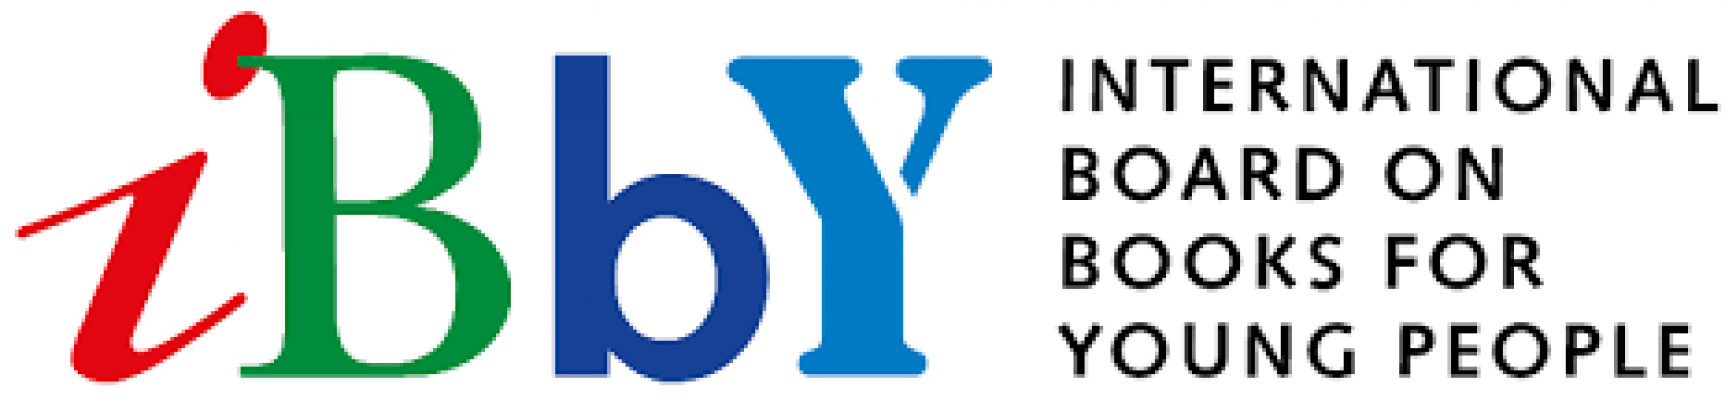 Congress of the International Board on Books for Young People (IBBY) 2022